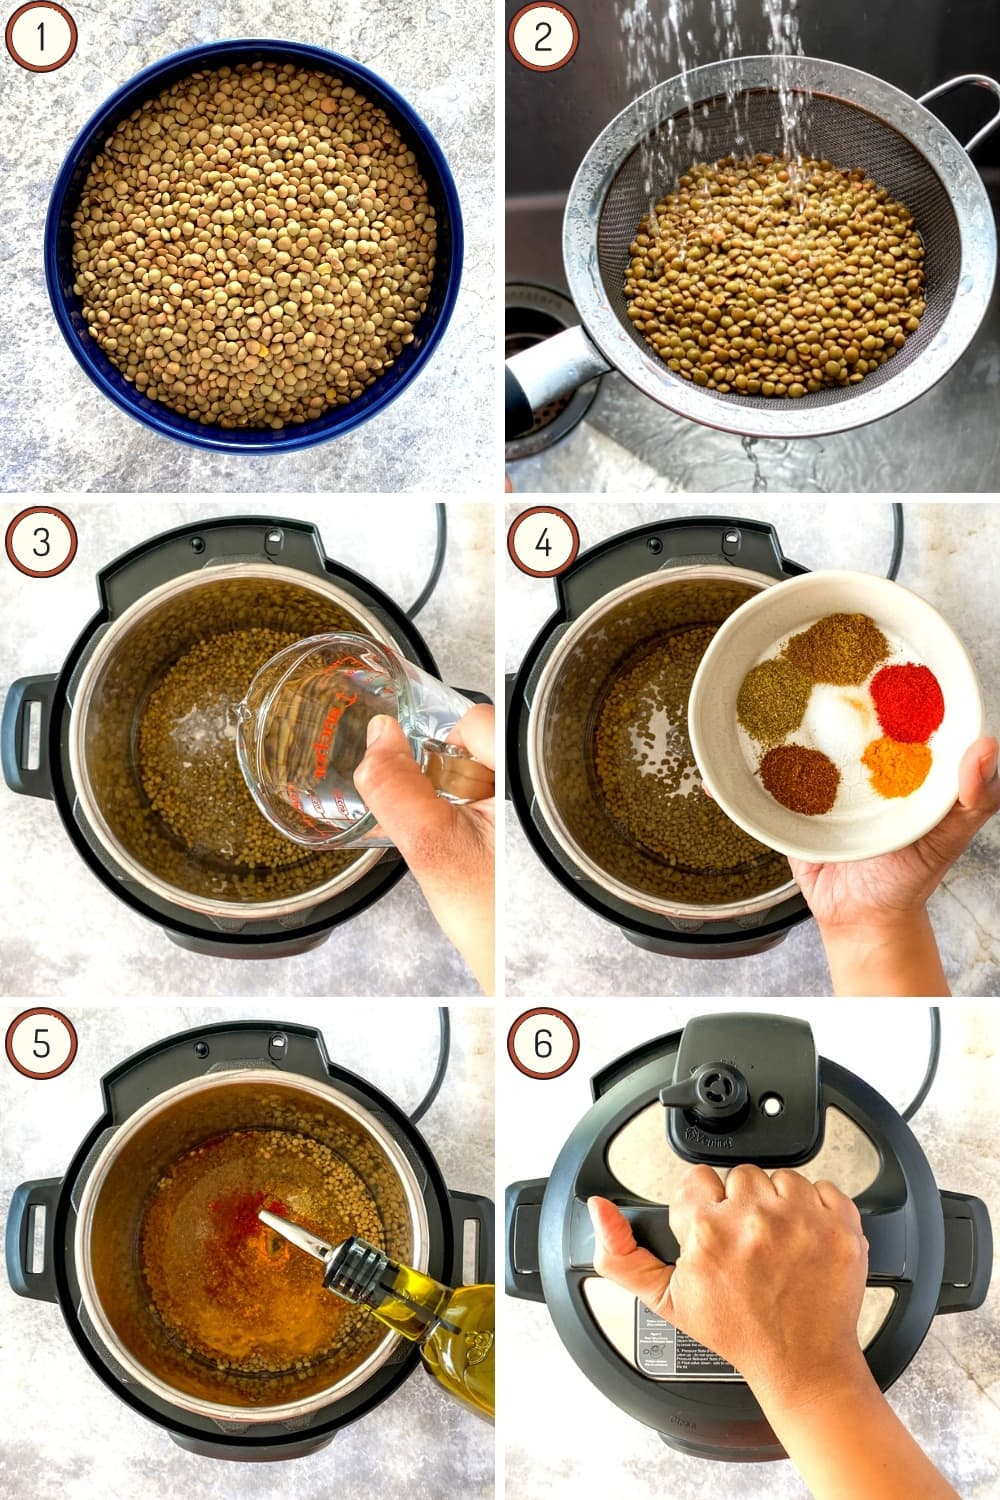 Instructions for how to cook lentils in the Instant Pot